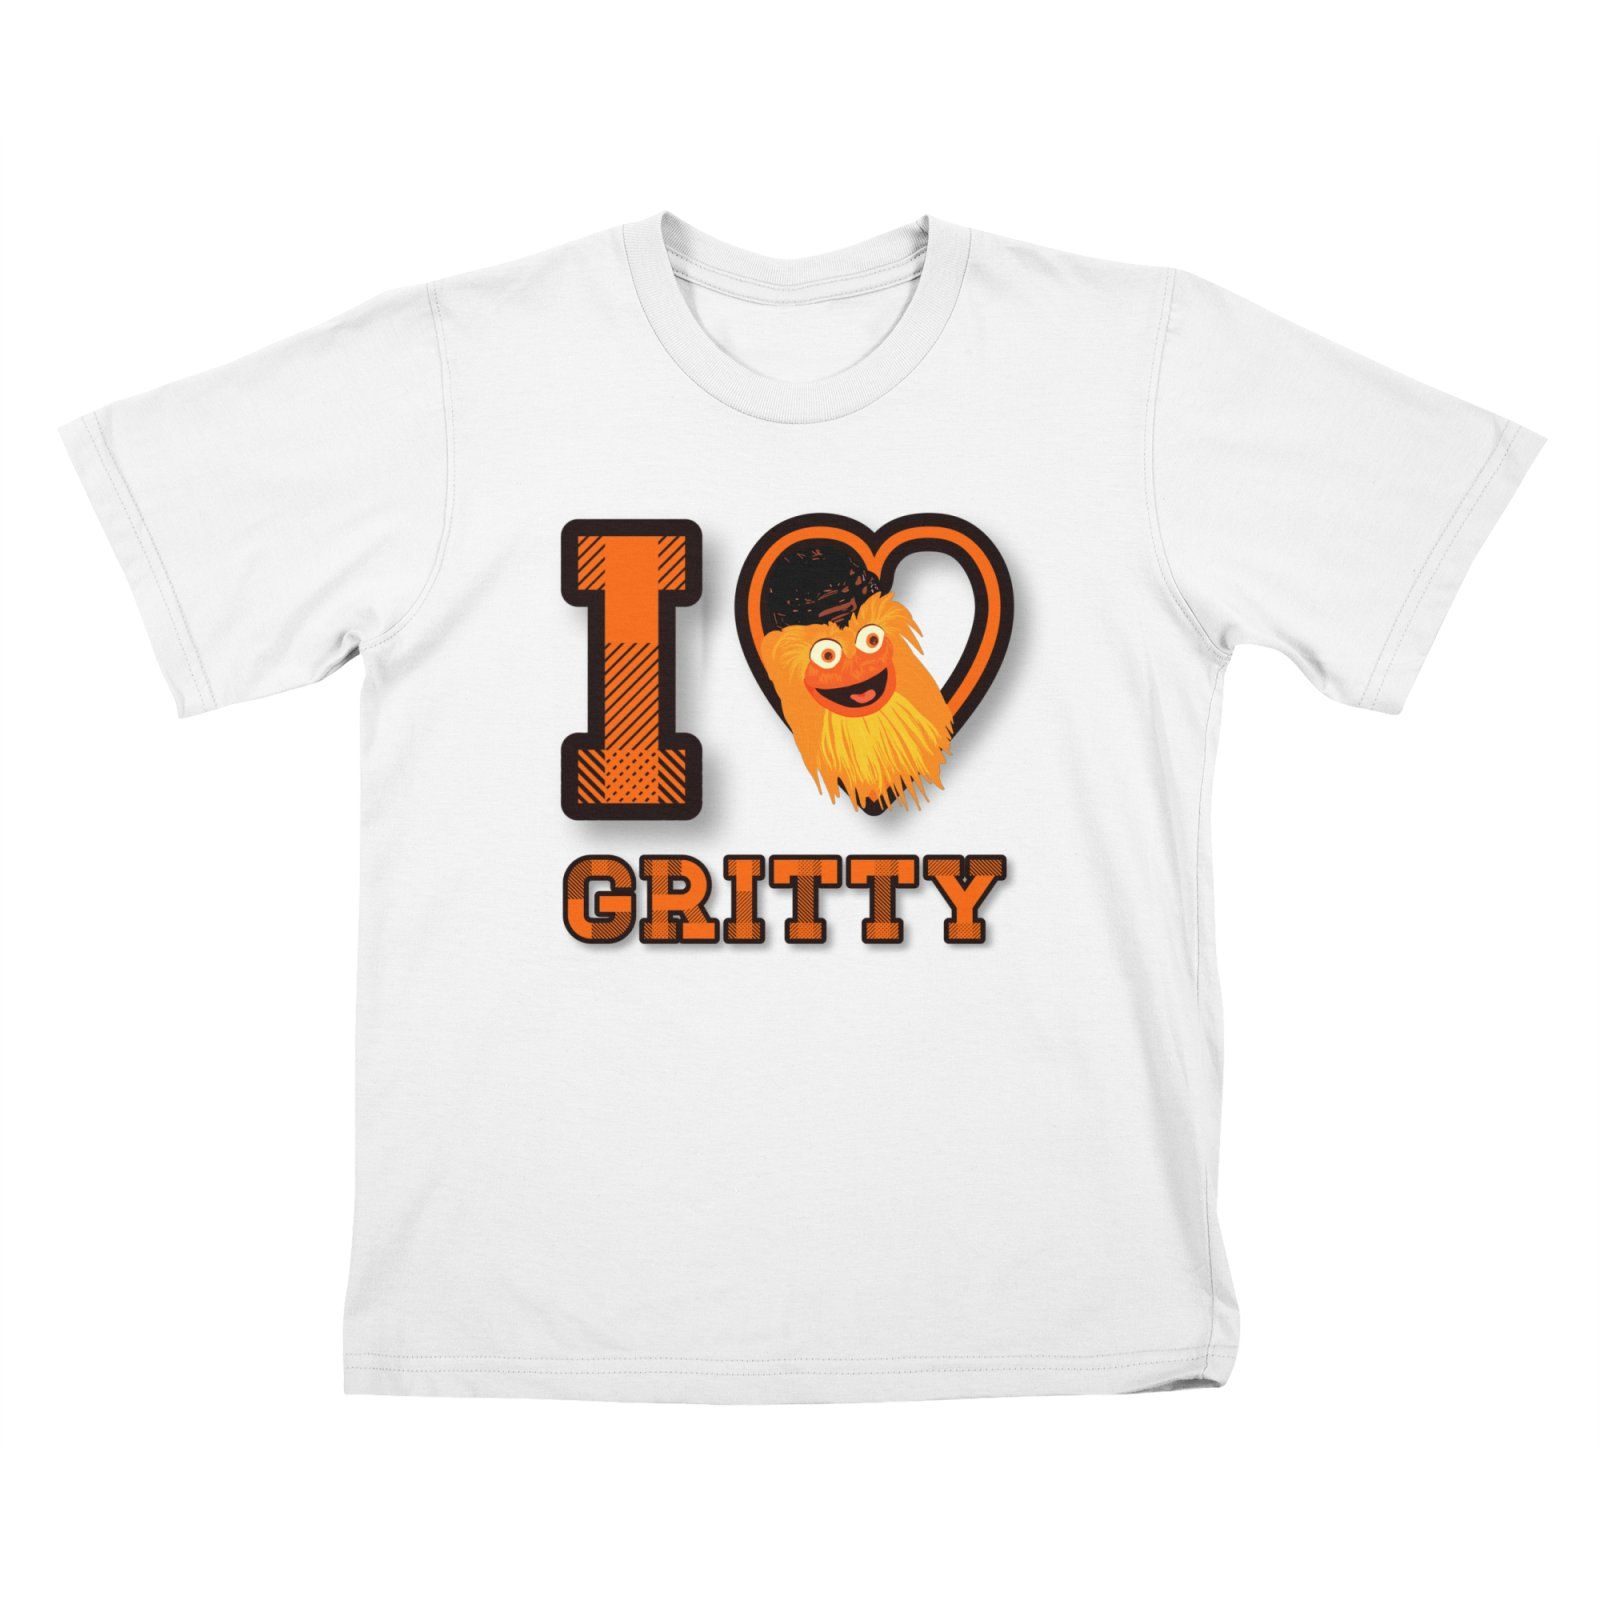 I love Gritty mascot hockey Philadelphia Kids T-Shirt by Mimie s Artist  Shop  Gritty  Philadelphia  flyers  tshirt ef8493840